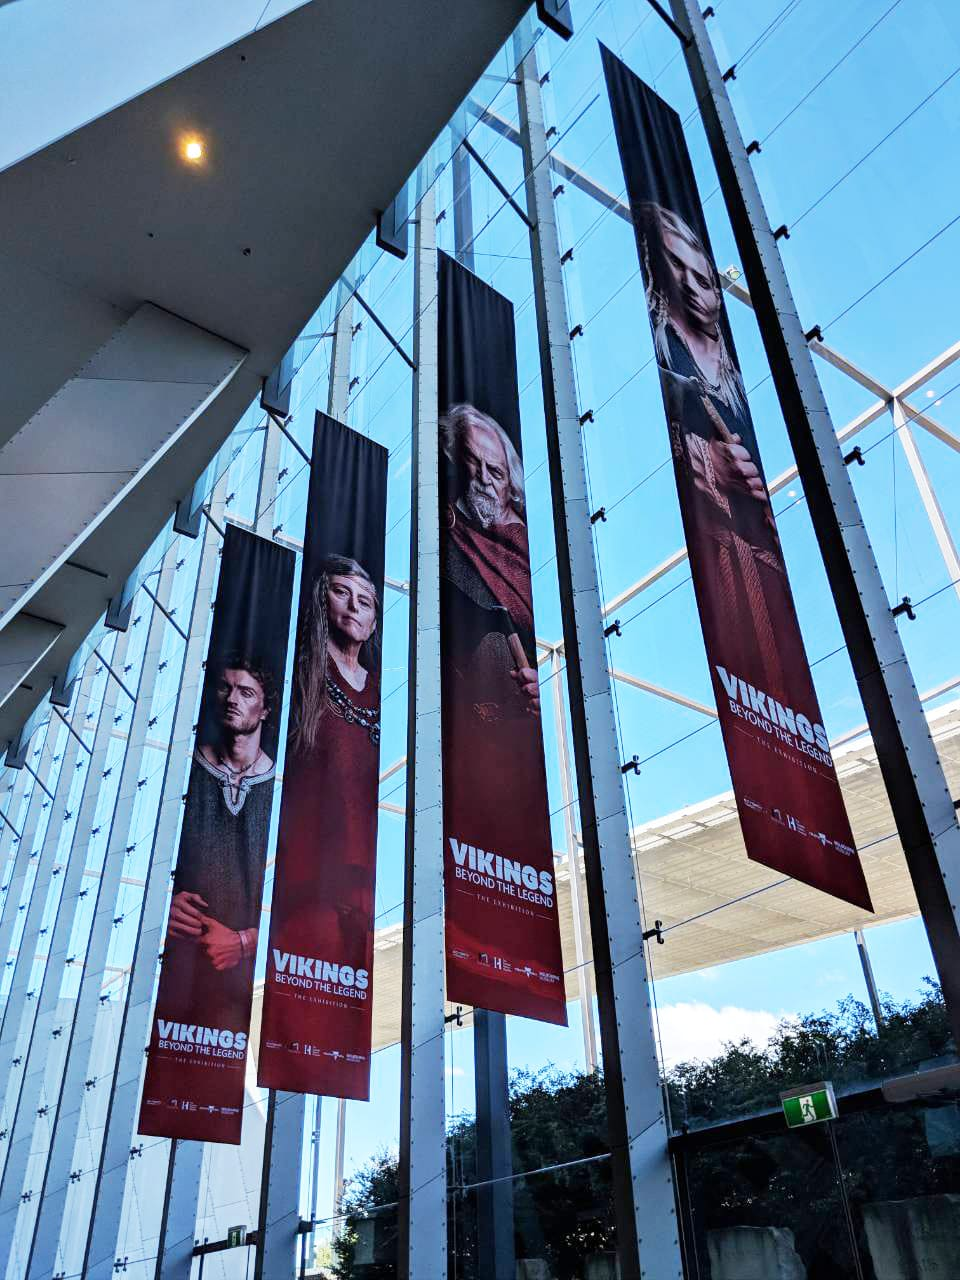 Banners promotion a Viking exhibition at the Melbourne Museum